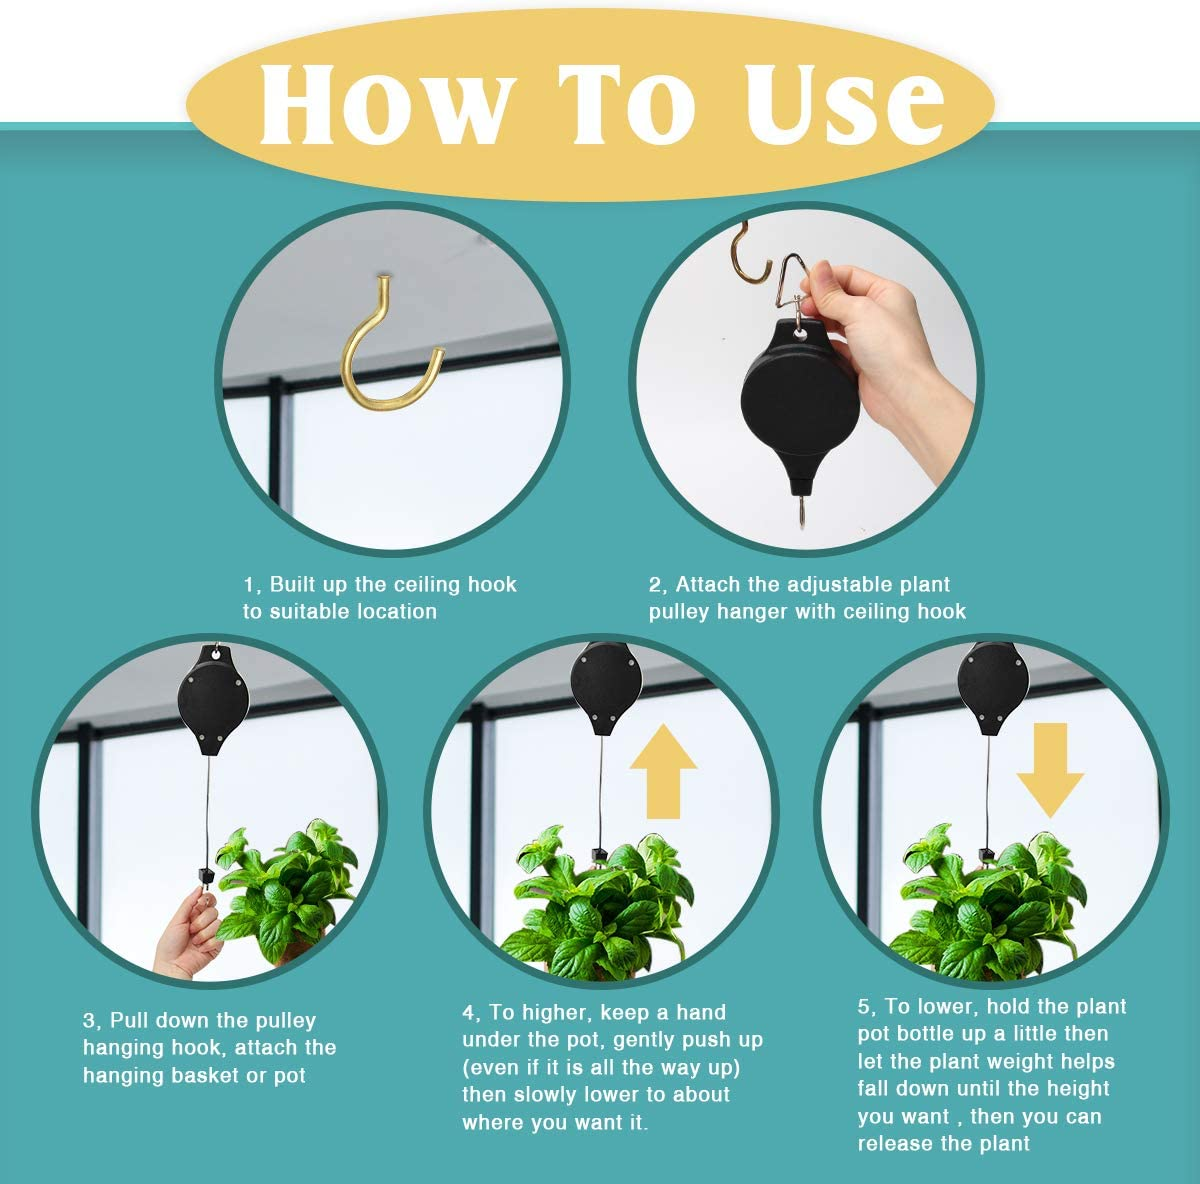 COITEK 2 Pack Plant Pulley Hanger Adjustable Heavy Duty Plant Hanging Pulleys for Garden Baskets /& Bird Feeder with 2 PCS Gold Metal Ceiling Plant Hooks Retractable Plant Hook Pulley